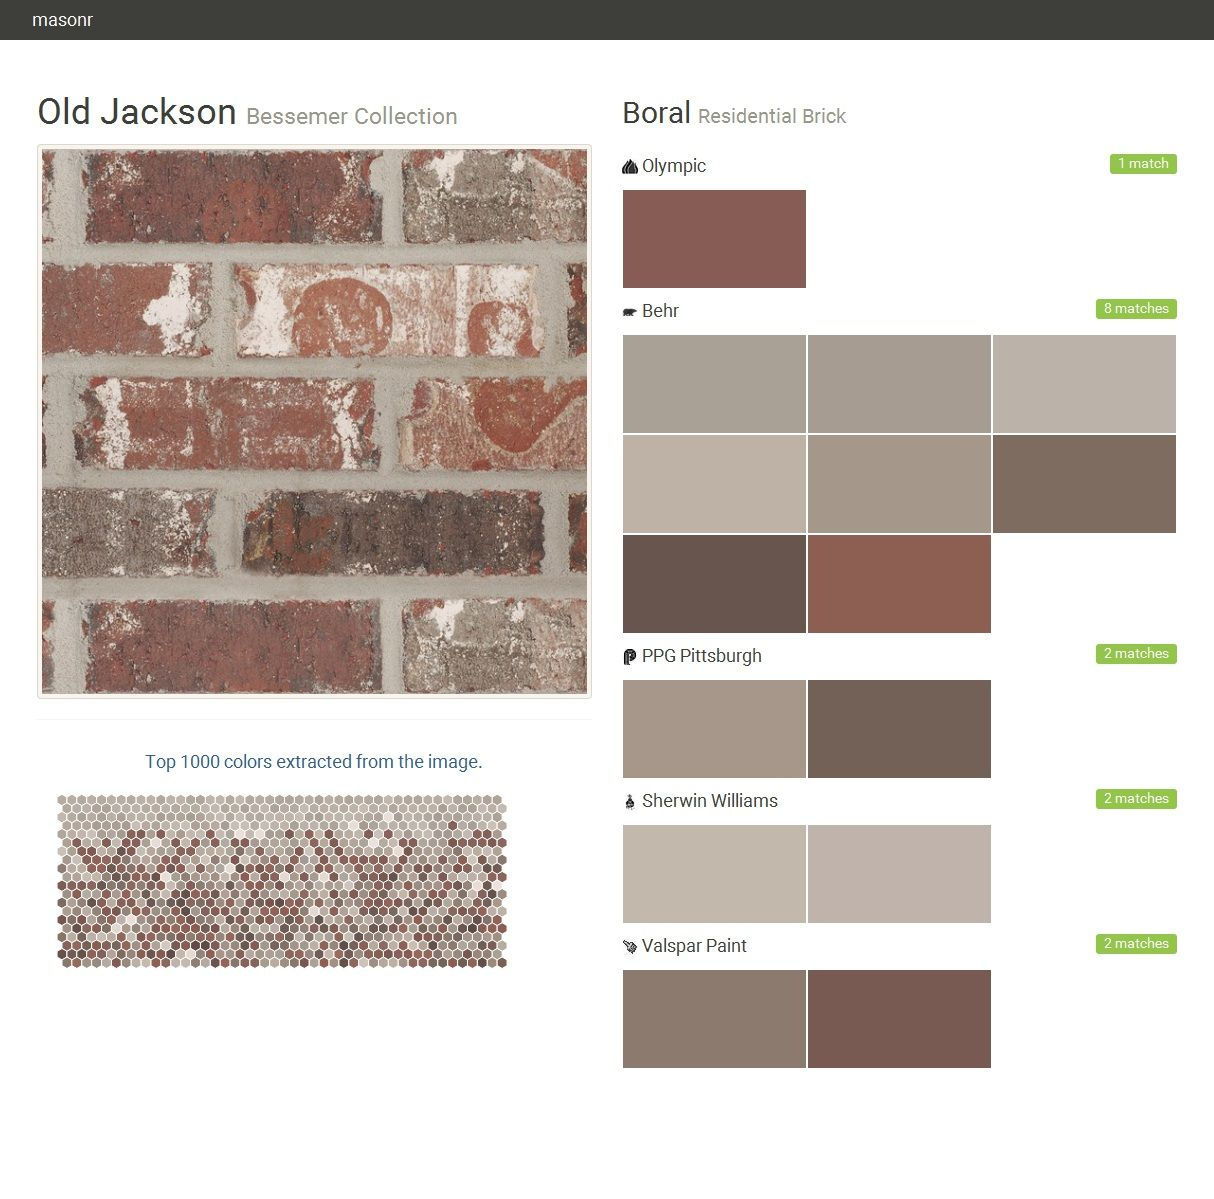 Old jackson bessemer collection residential brick boral behr olympic ppg paints sherwin - Breathable exterior masonry paint collection ...